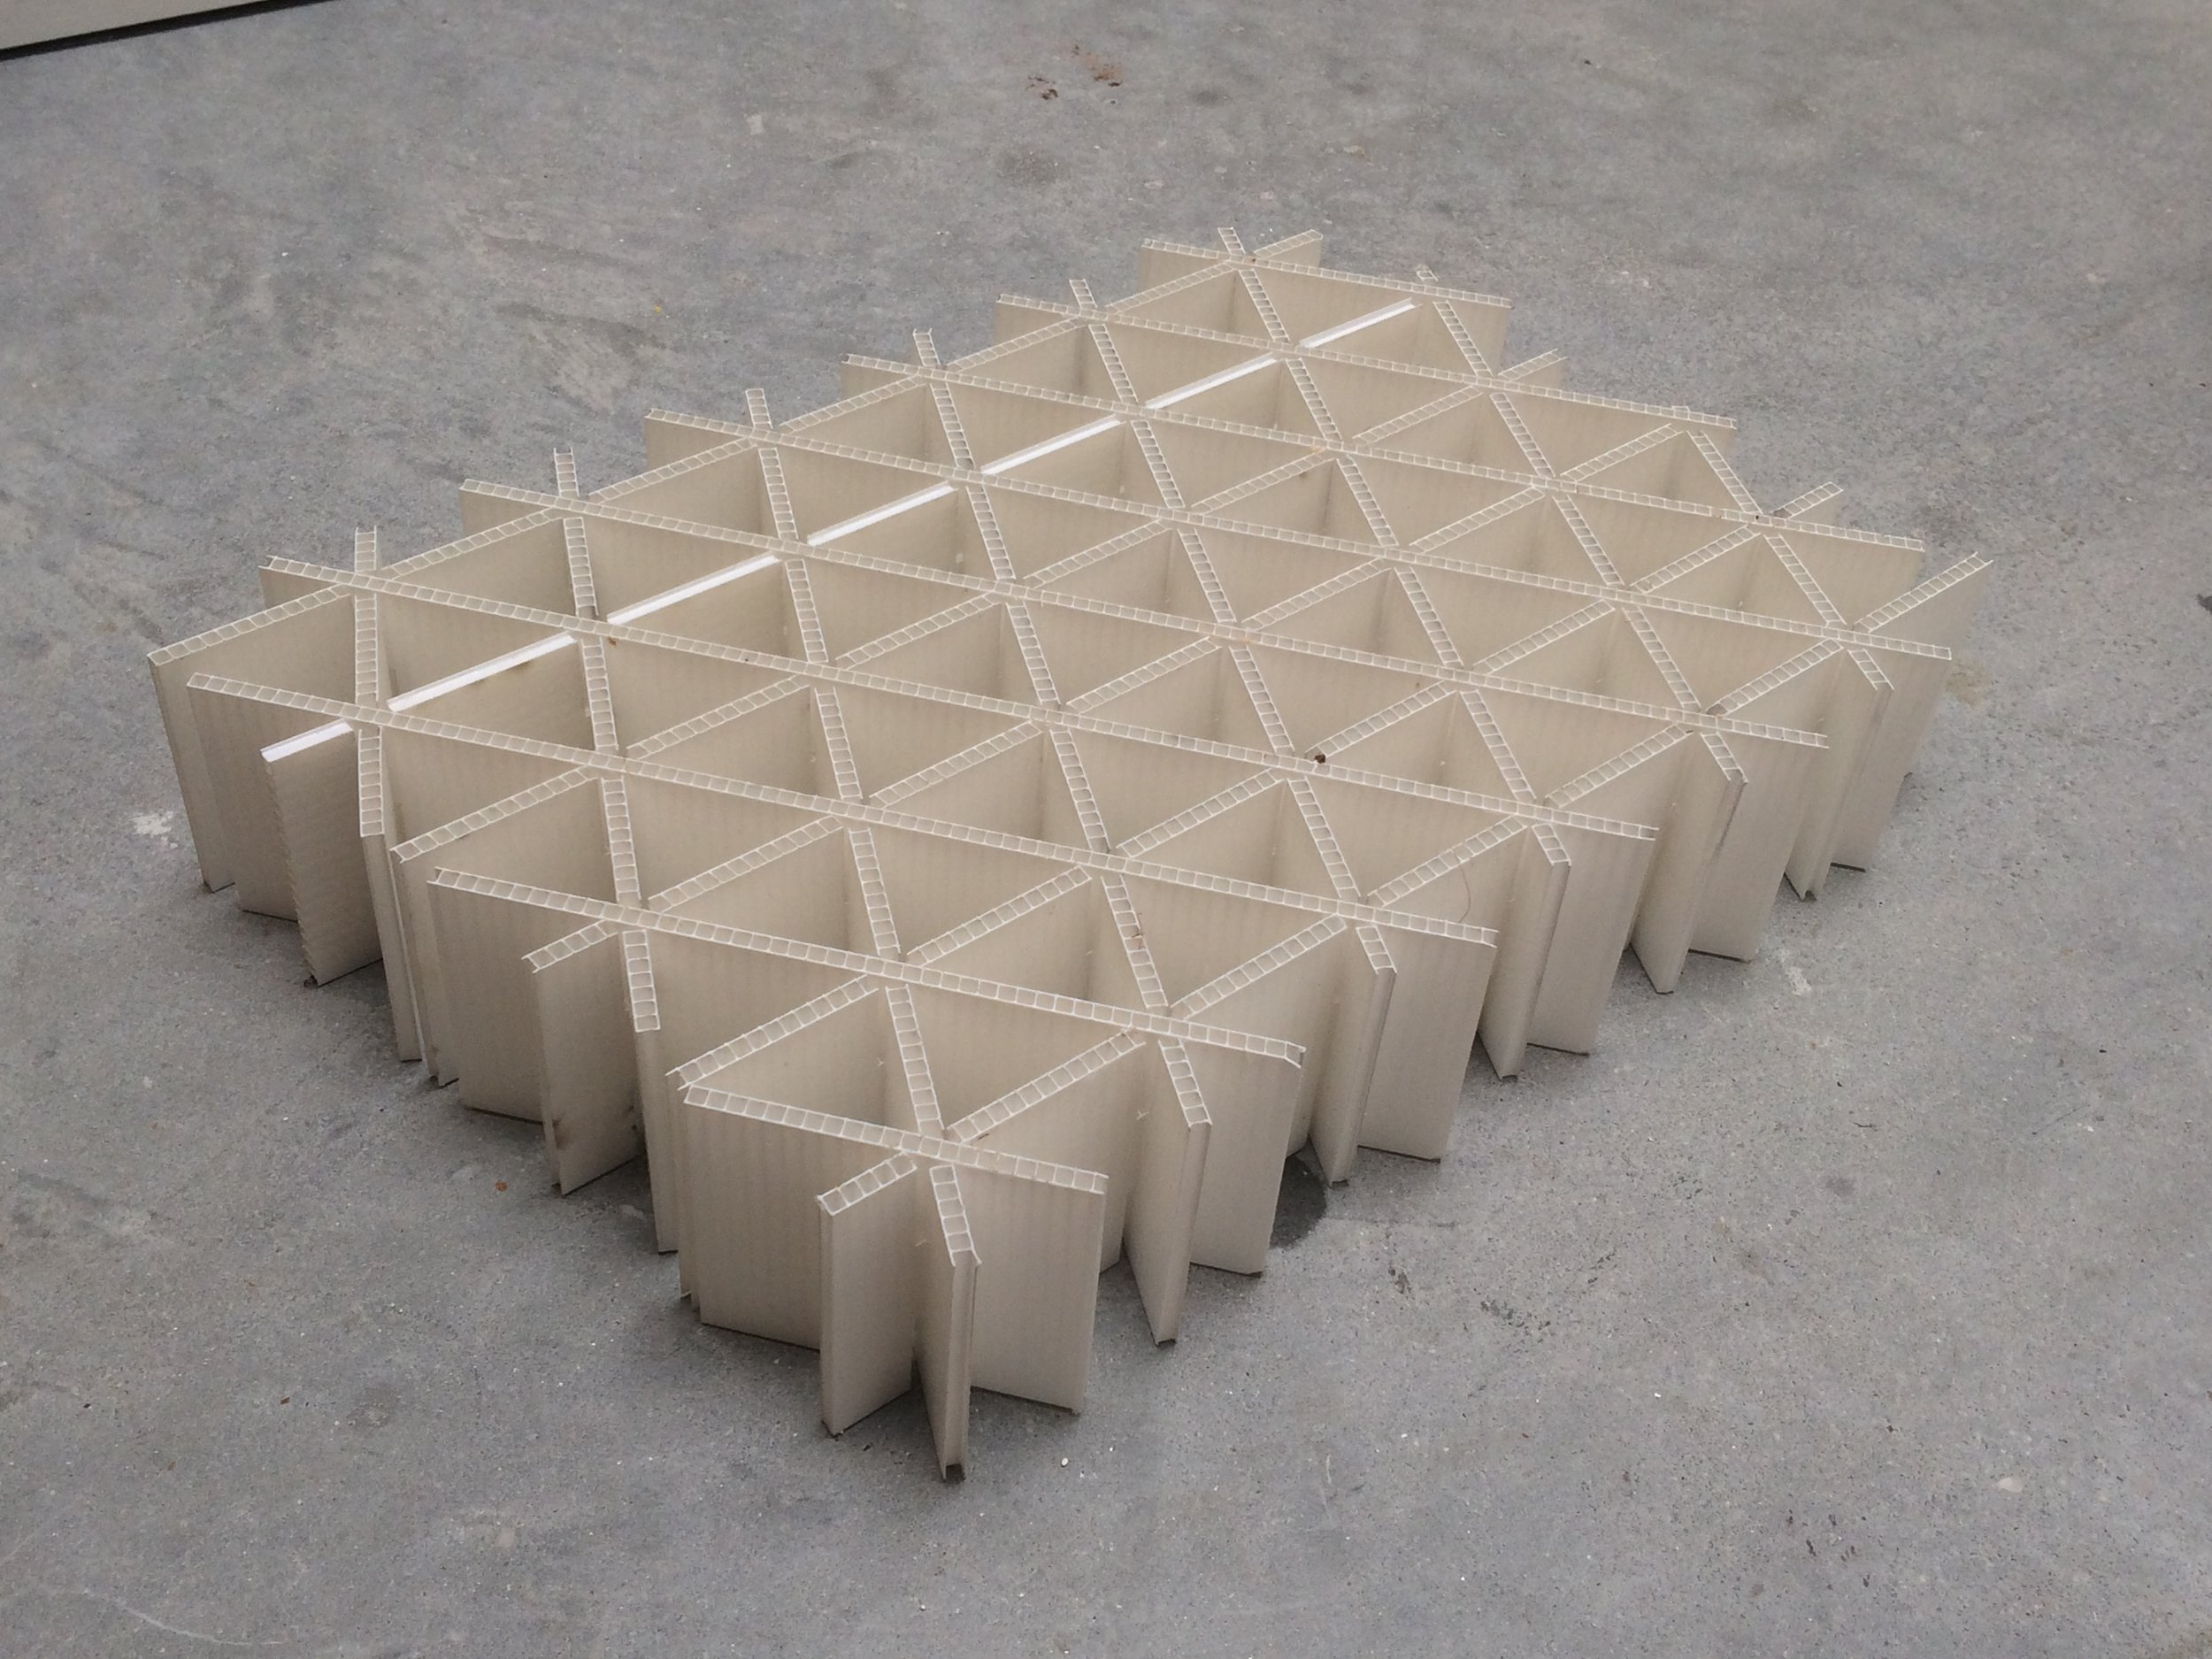 02 Recycled plastic triangle construction  .JPG